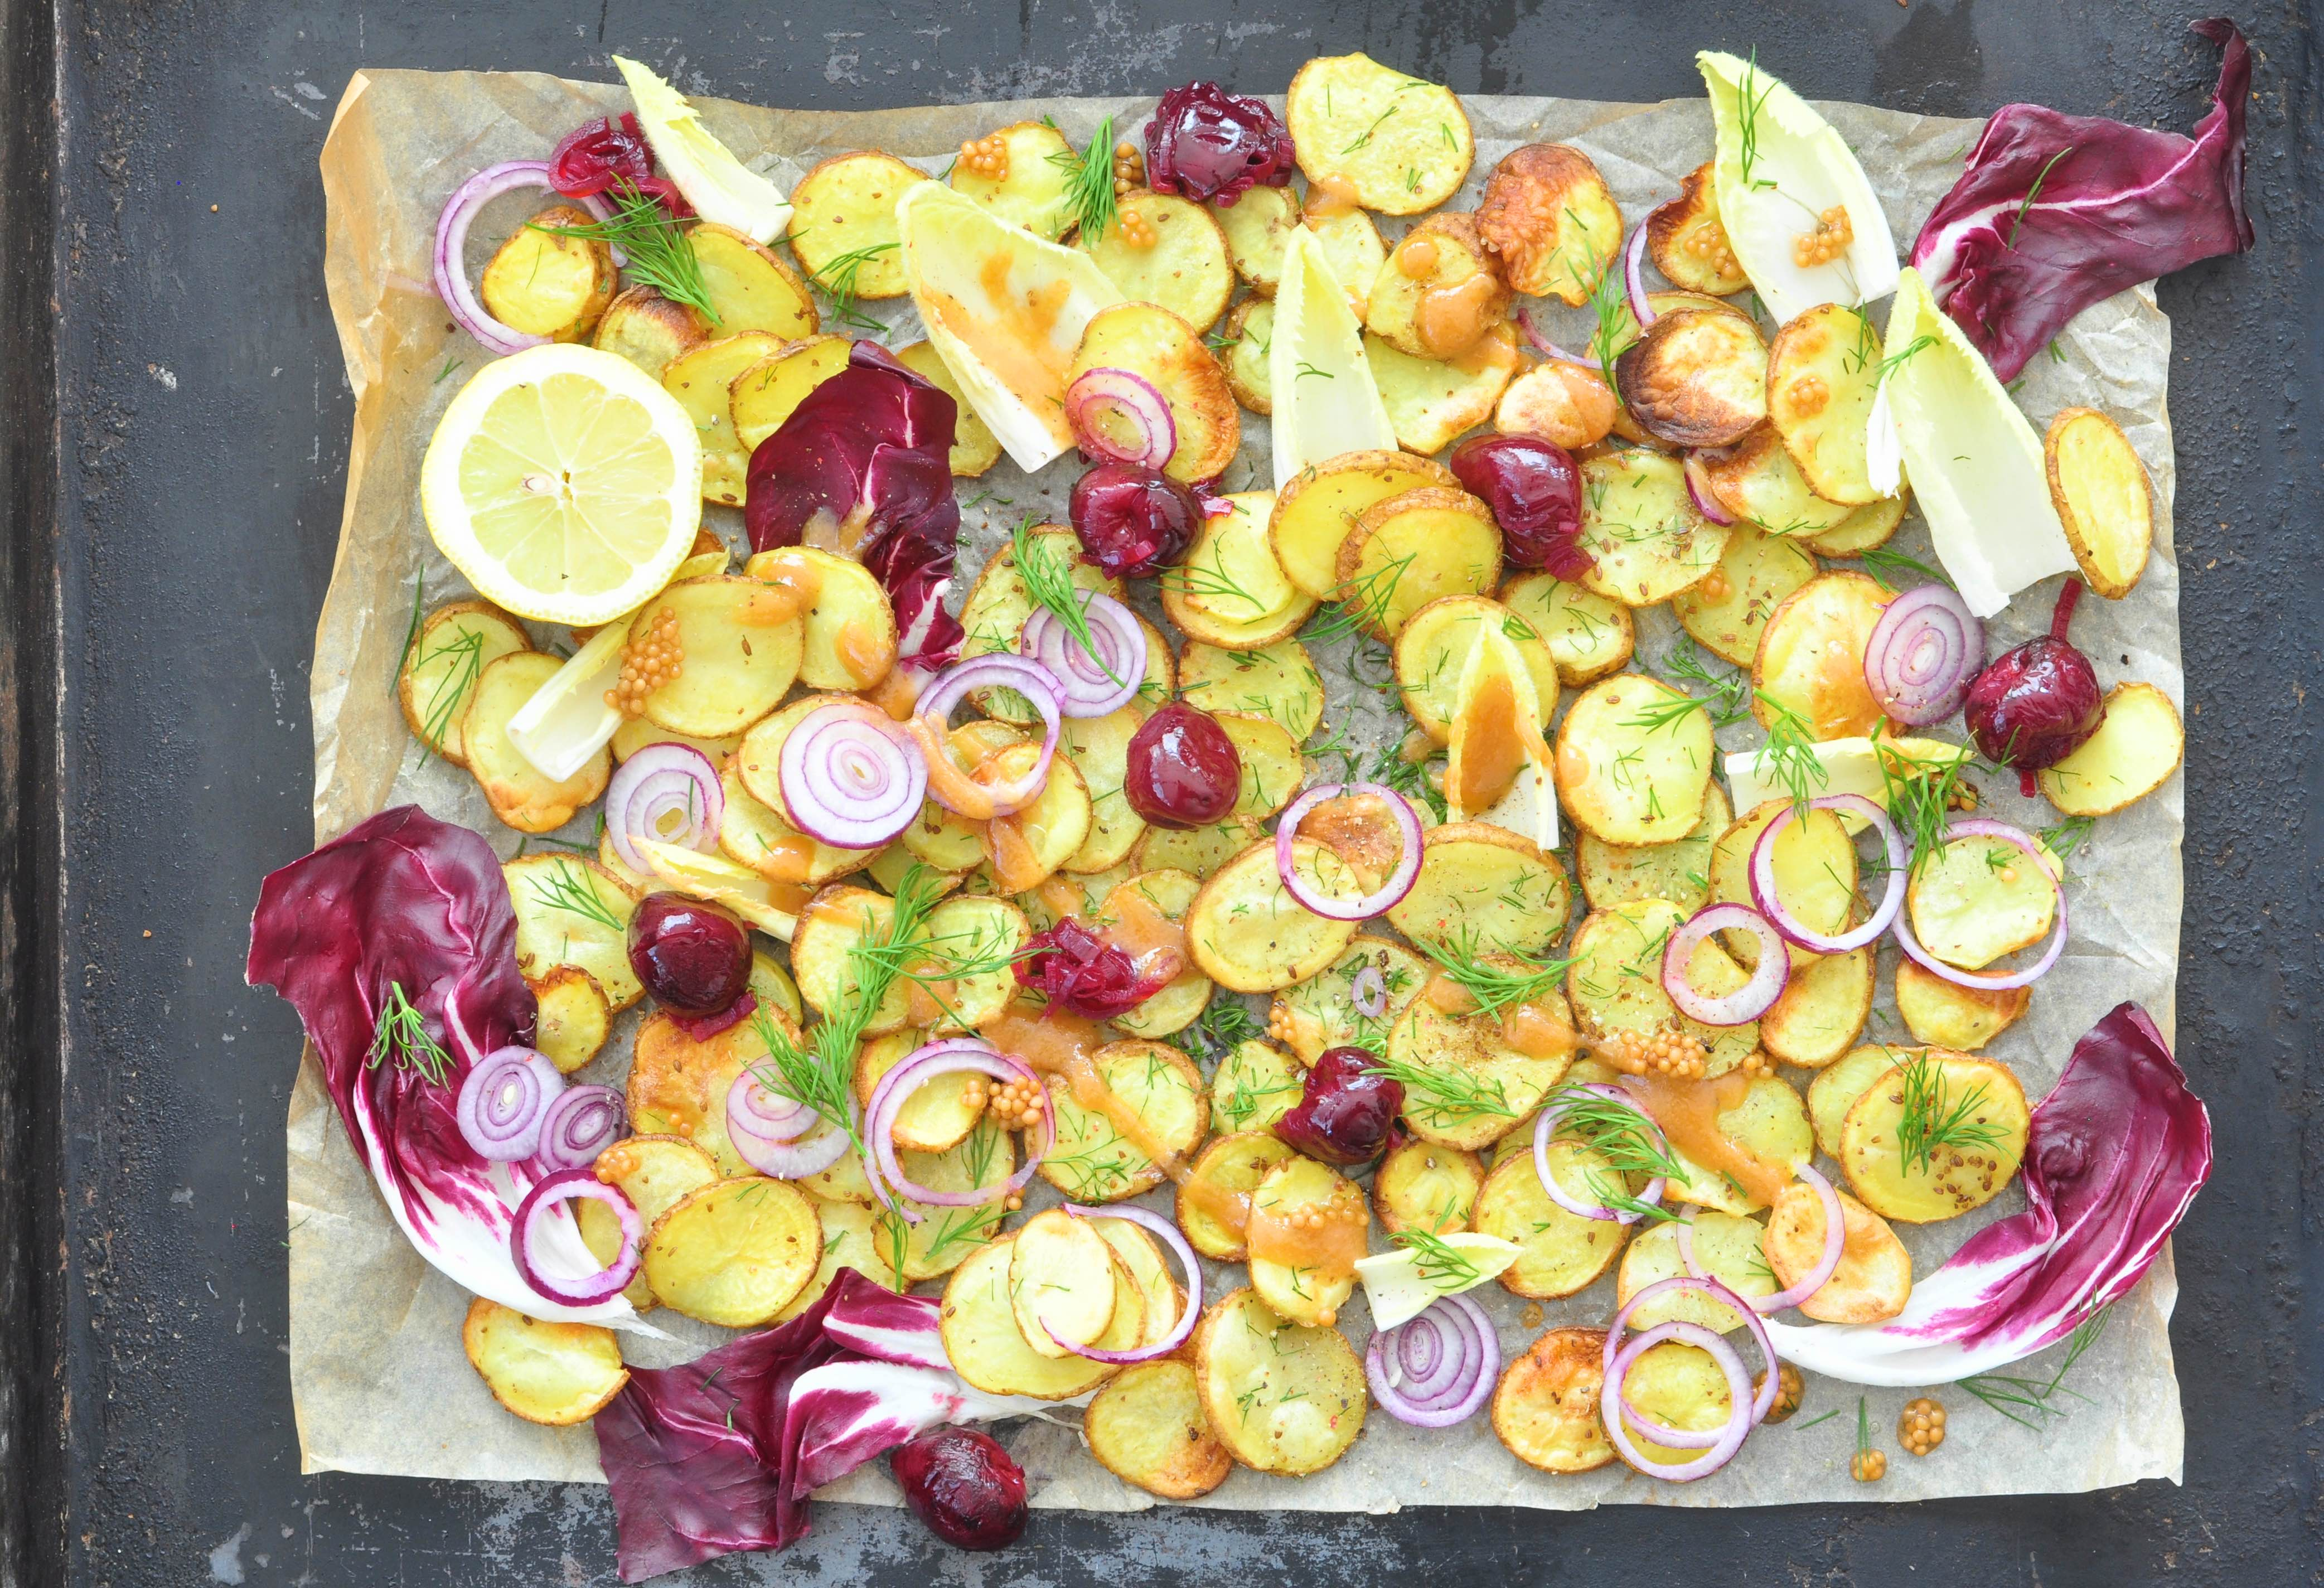 Roasted_new_potatoes_with a_cherry_relish_and_pickled_mustard_seeds